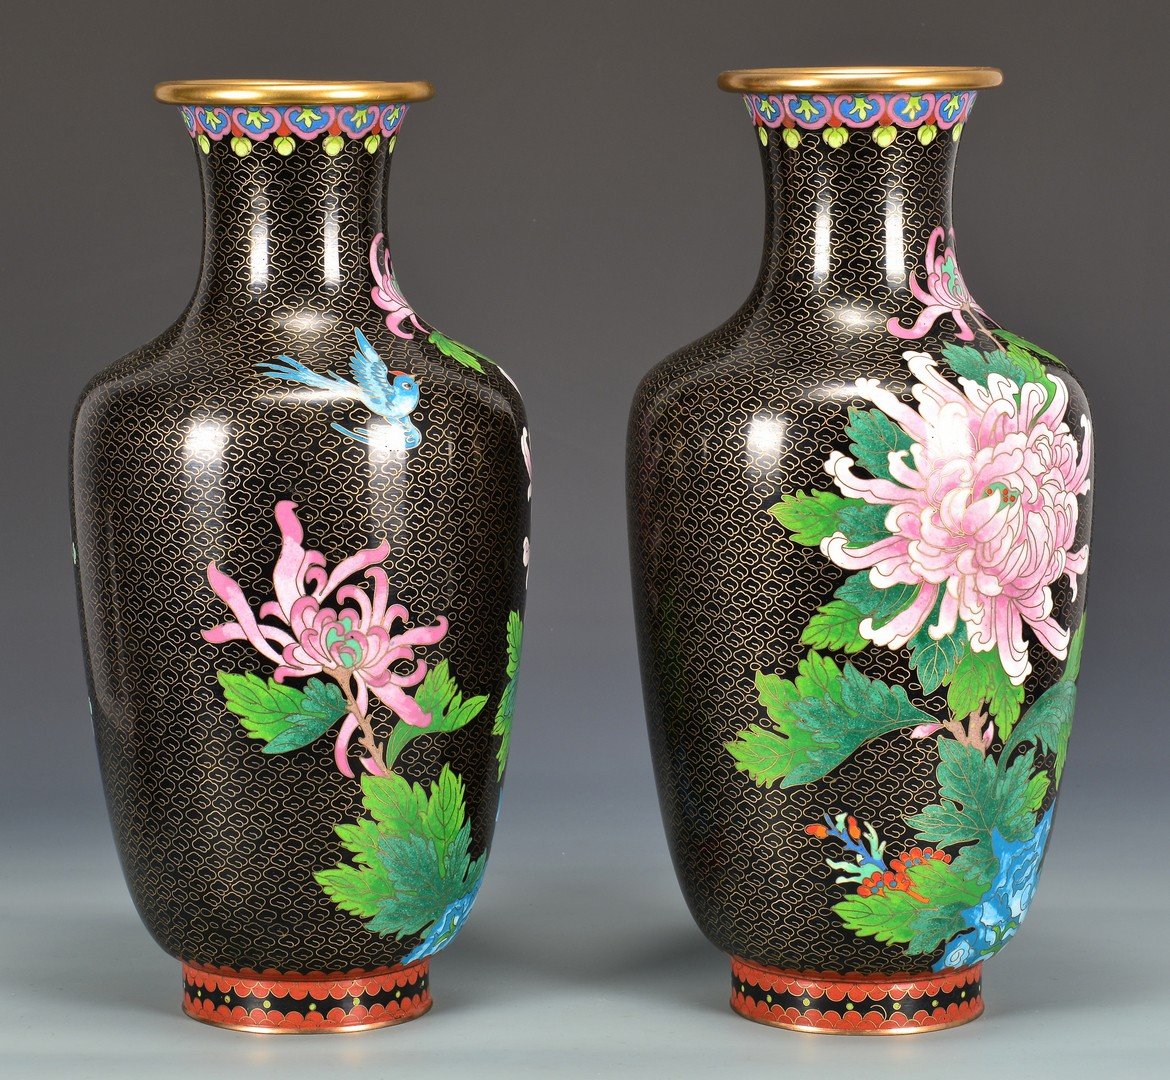 Lot 4010180: Group of Cloisonne, Pr. Vases & Planter, 3 items